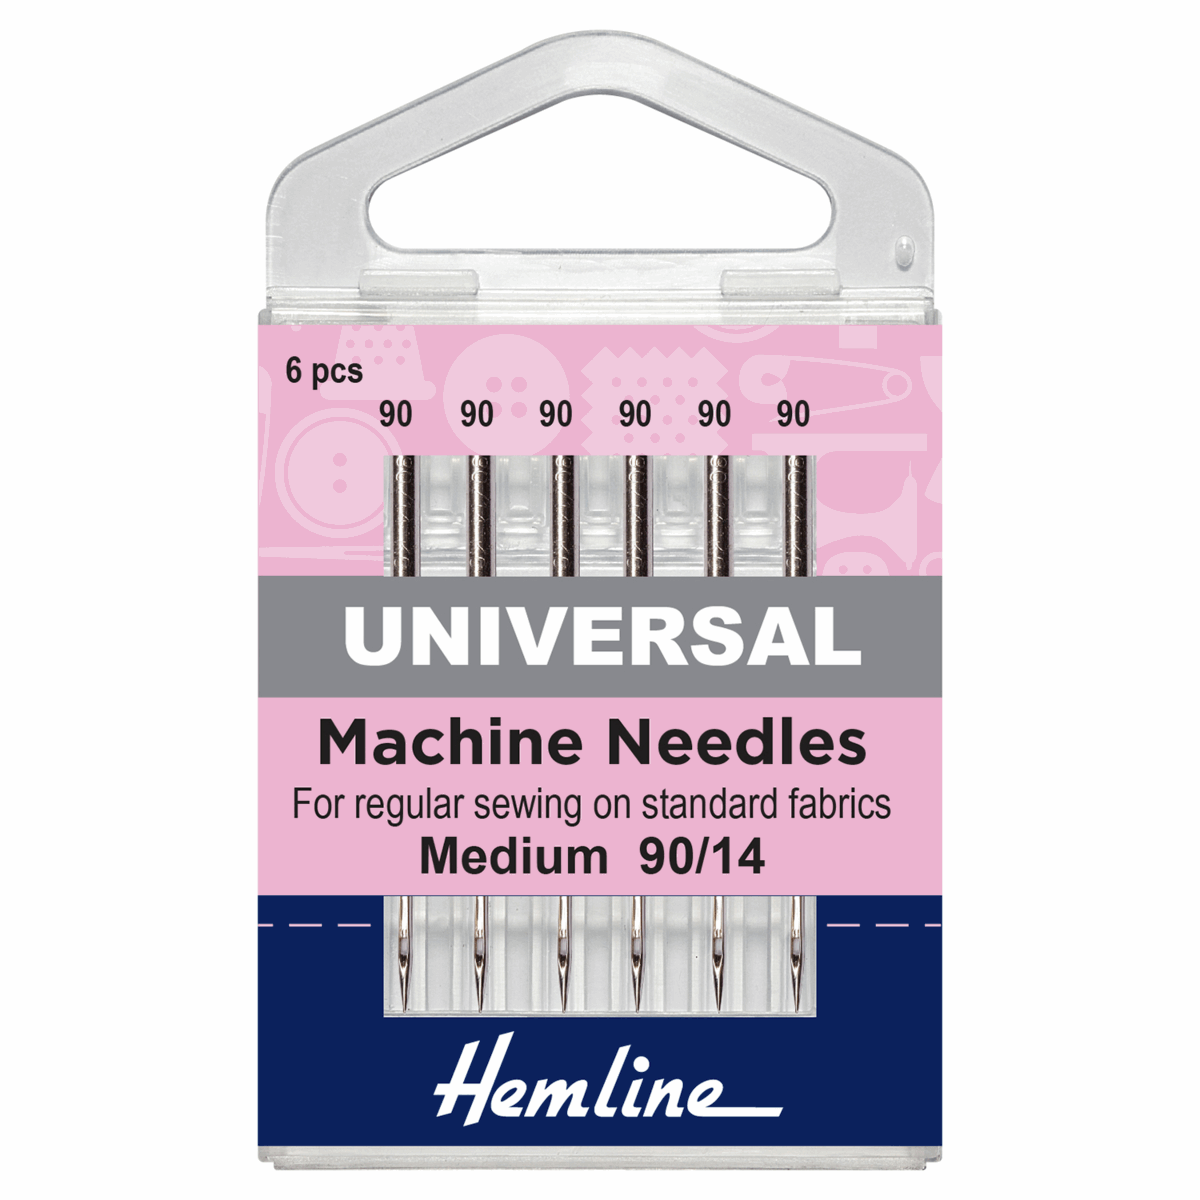 Picture of Sewing Machine Needles: Universal: Medium/Heavy 90/14: 6 Pieces